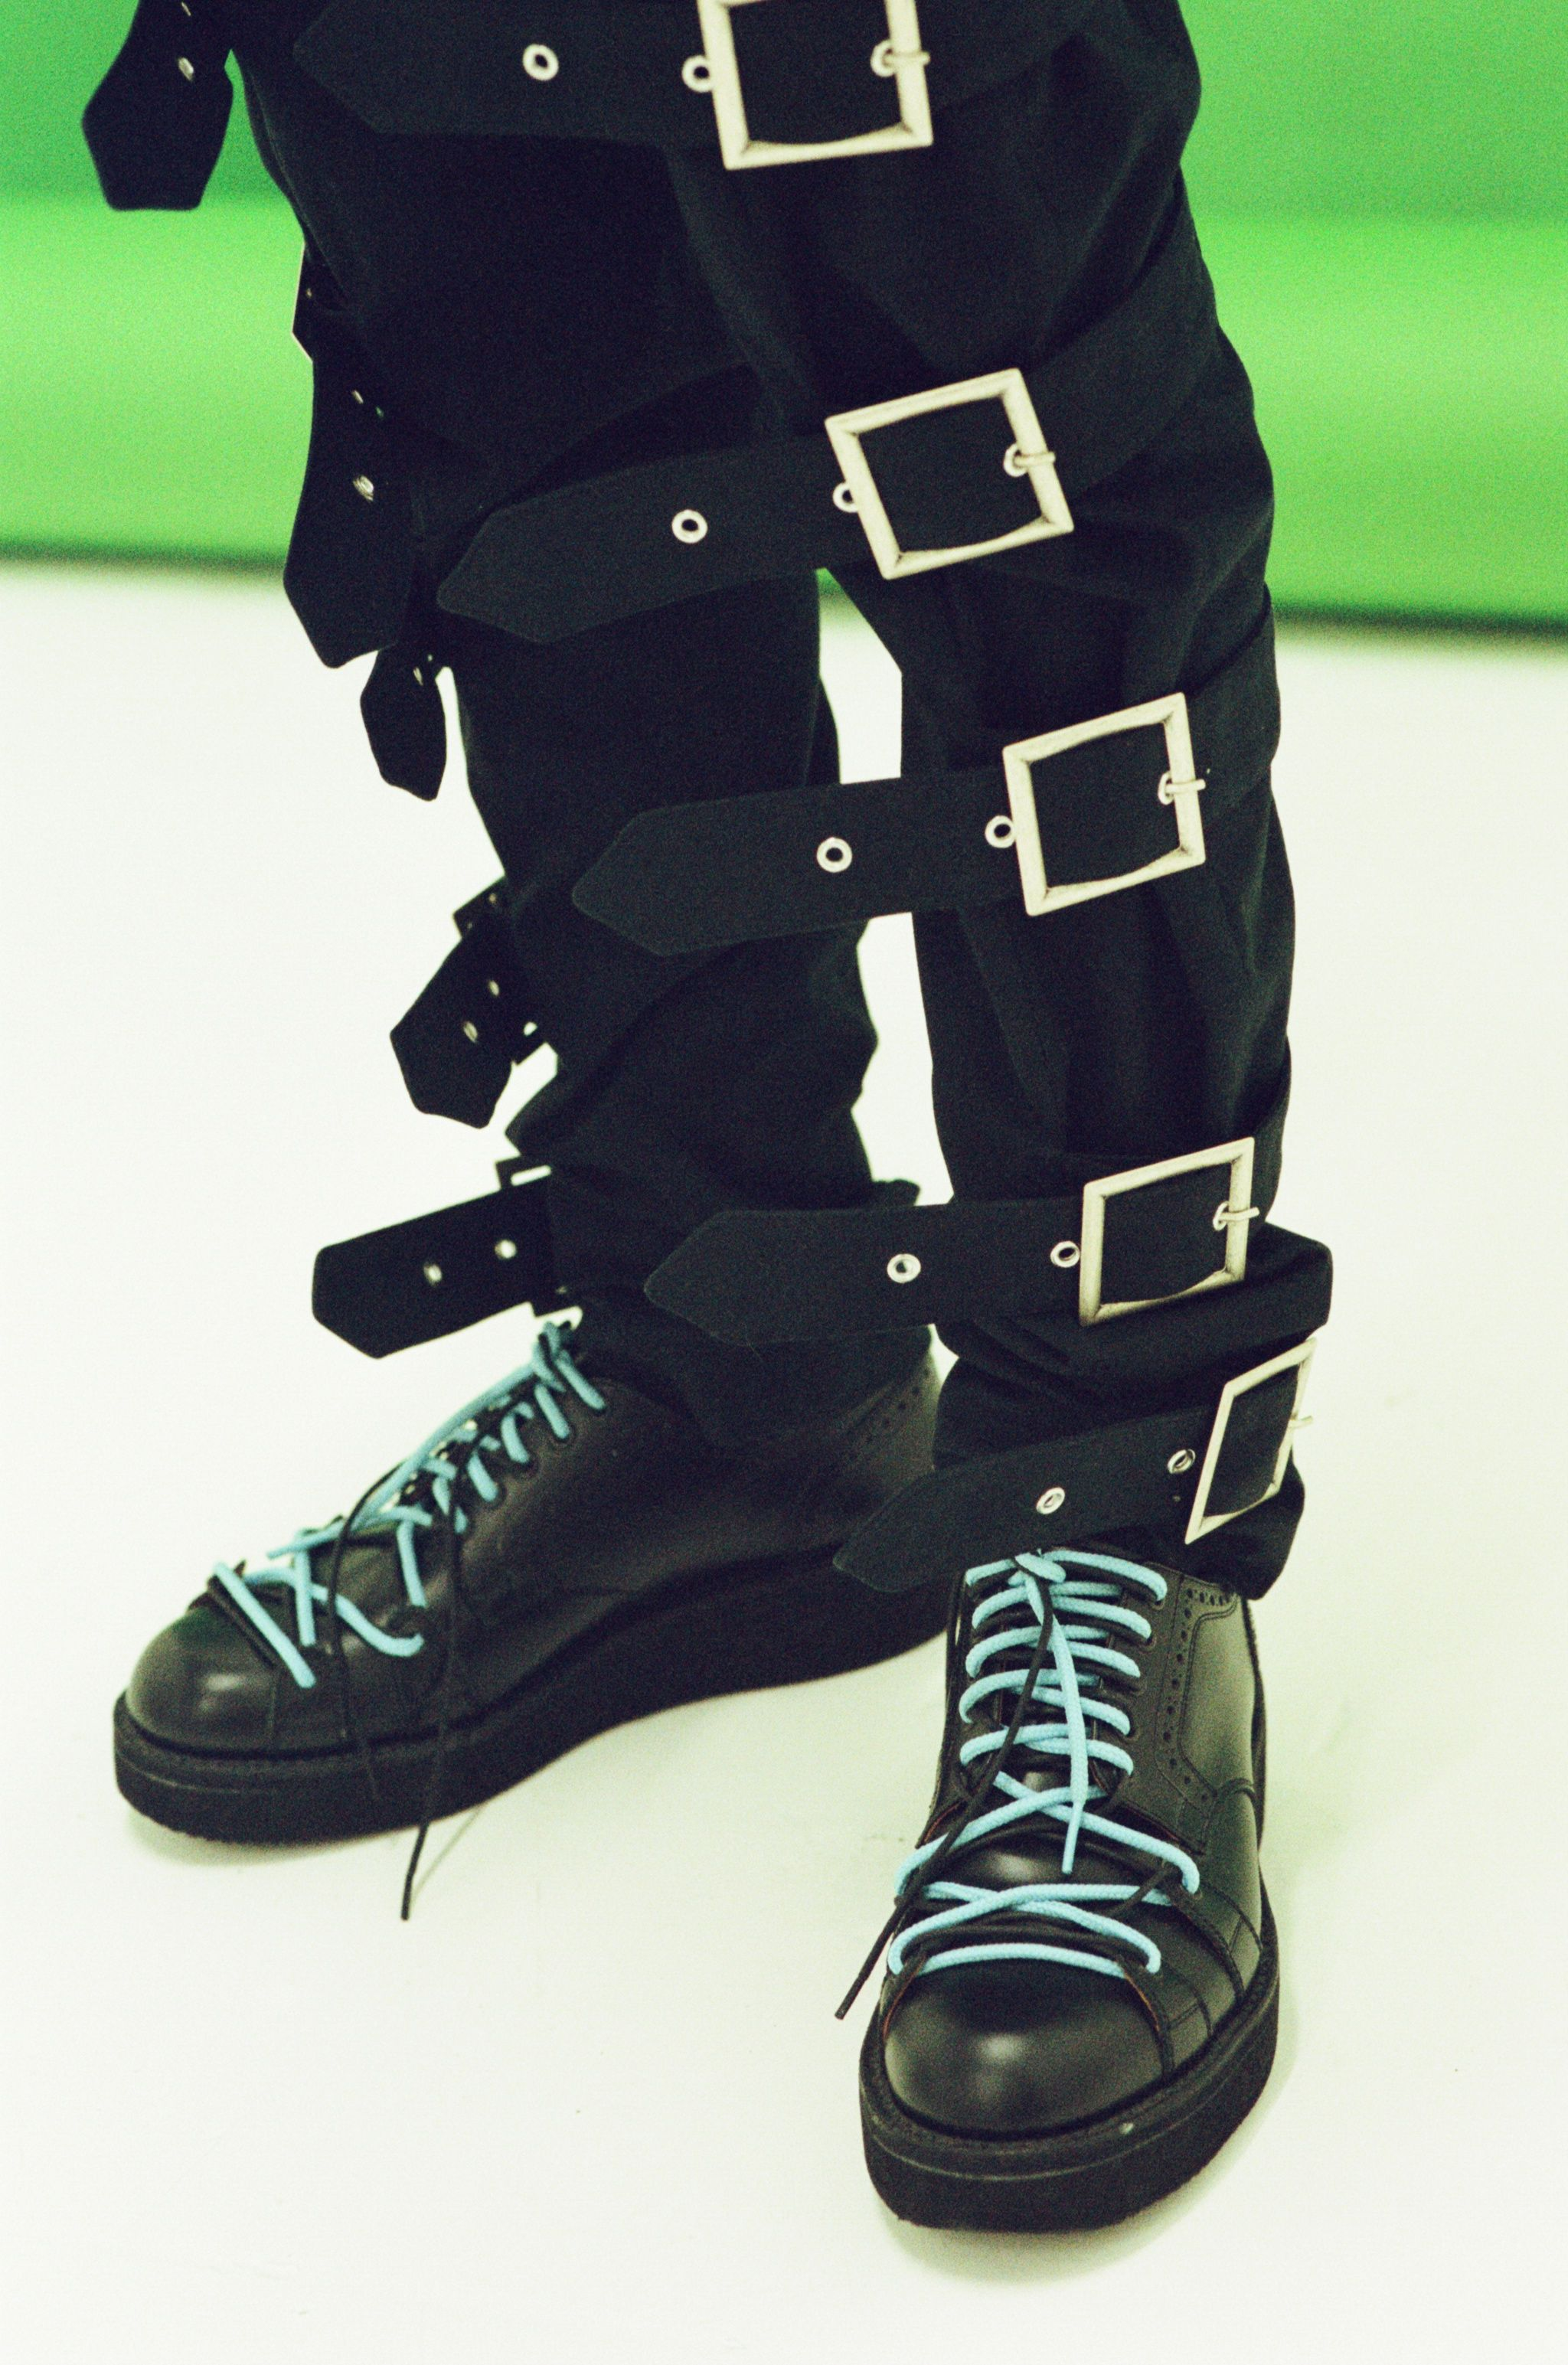 Charles Jeffrey Fall Winter 17 heavy buckle pants at HLorenzo